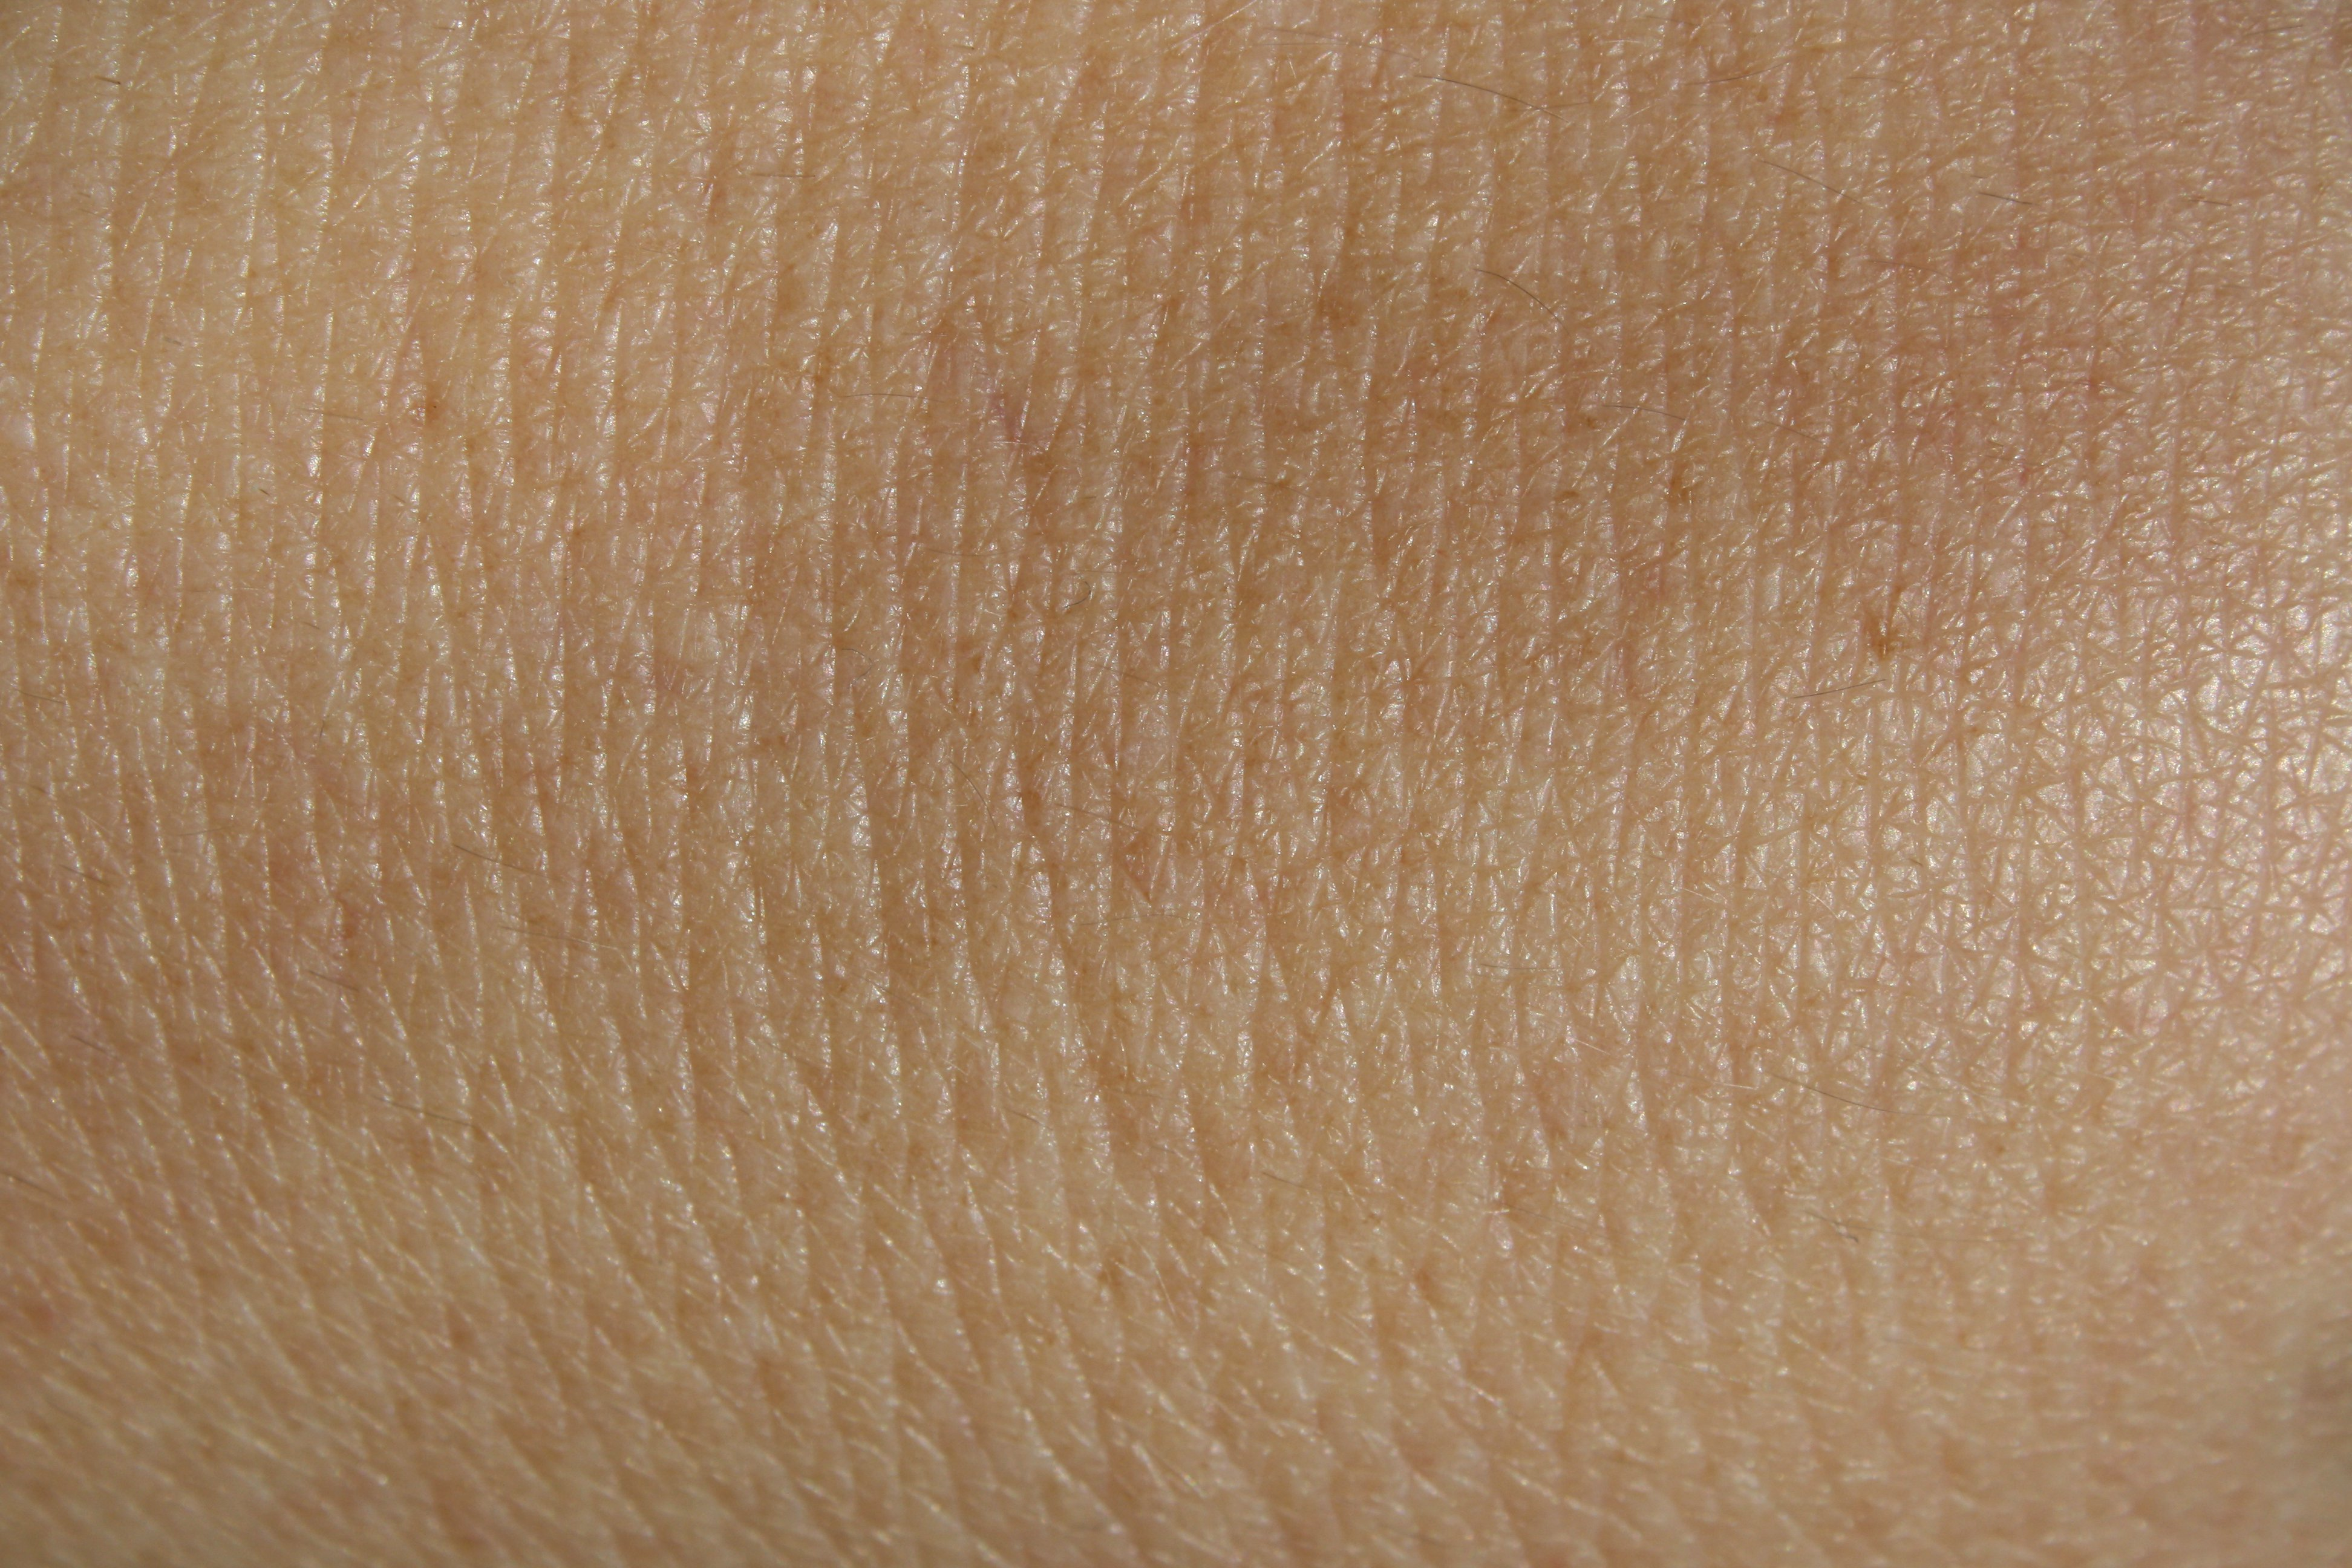 Skin - Free high resolution photo of human skin - Dimensions  3888